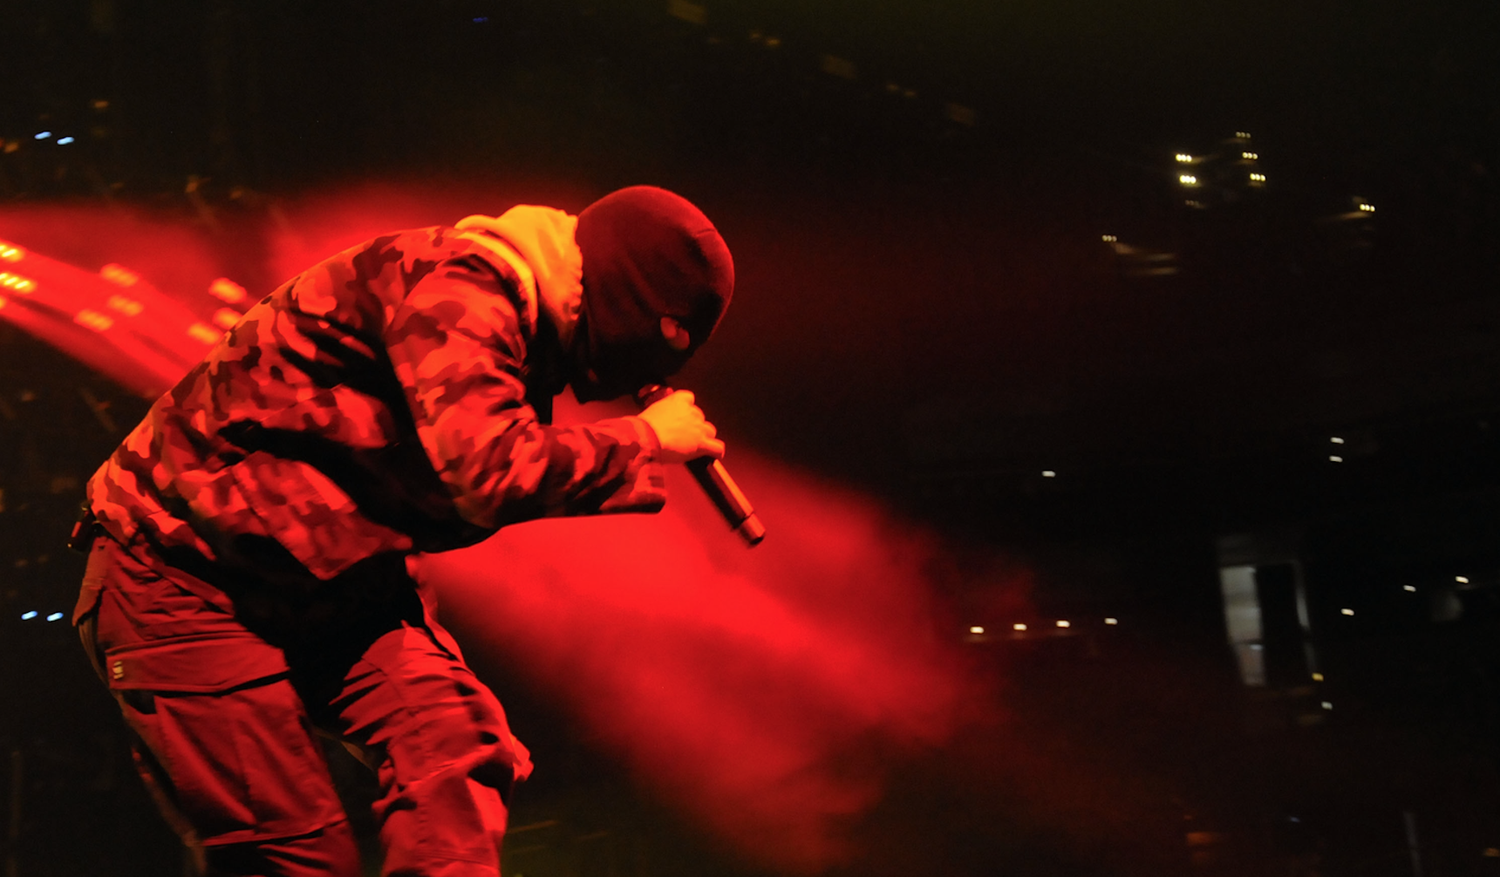 afb2ee3b0 Twenty One Pilots Brings the Heat to TD Garden | Arts | The Harvard ...